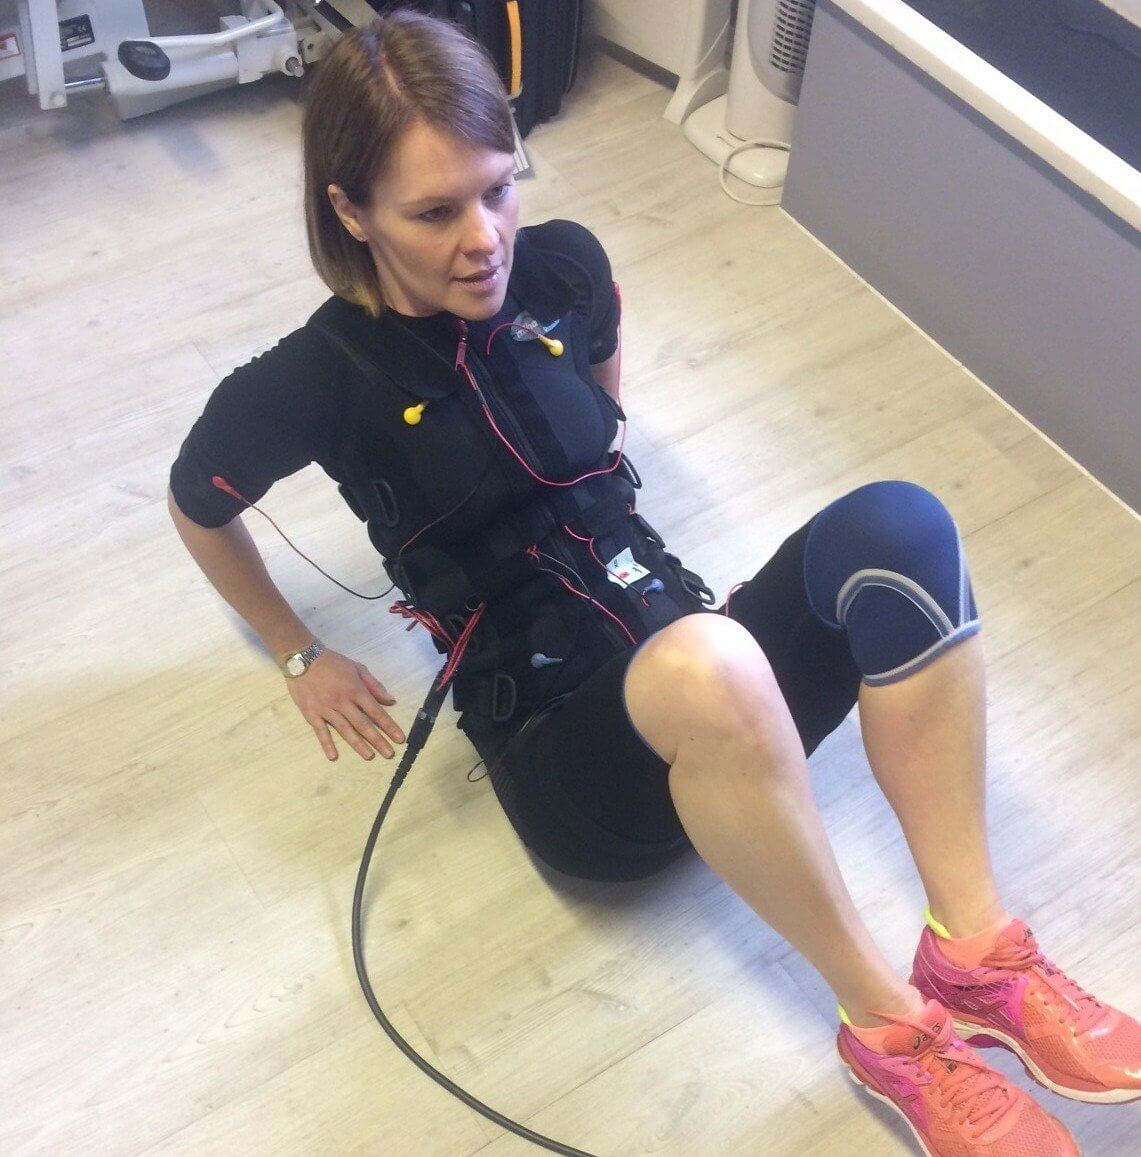 woman with the electrode pads